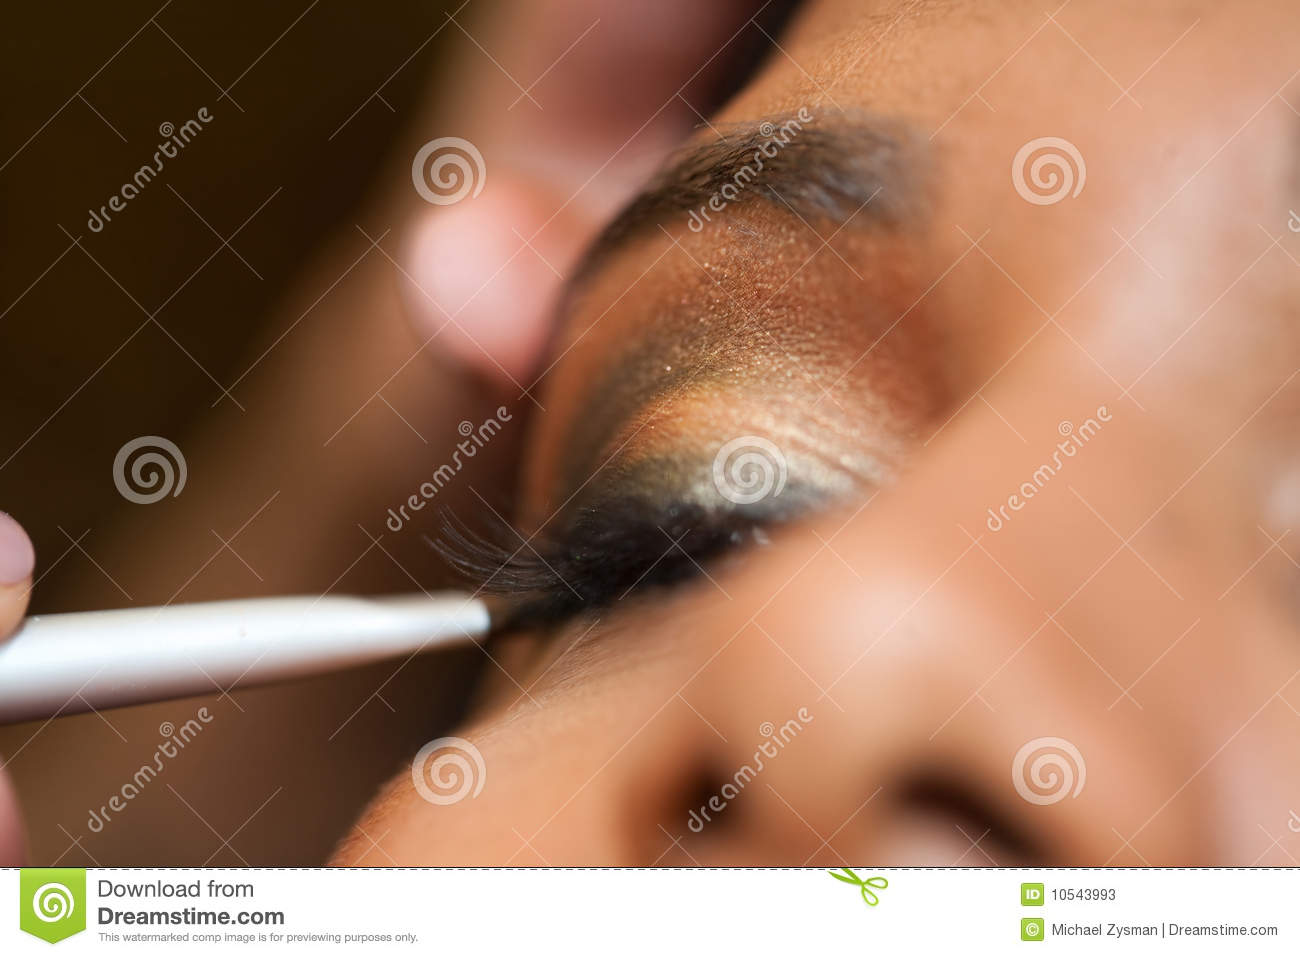 Young Indian Woman Has Eye Make Up Applied At A Salon